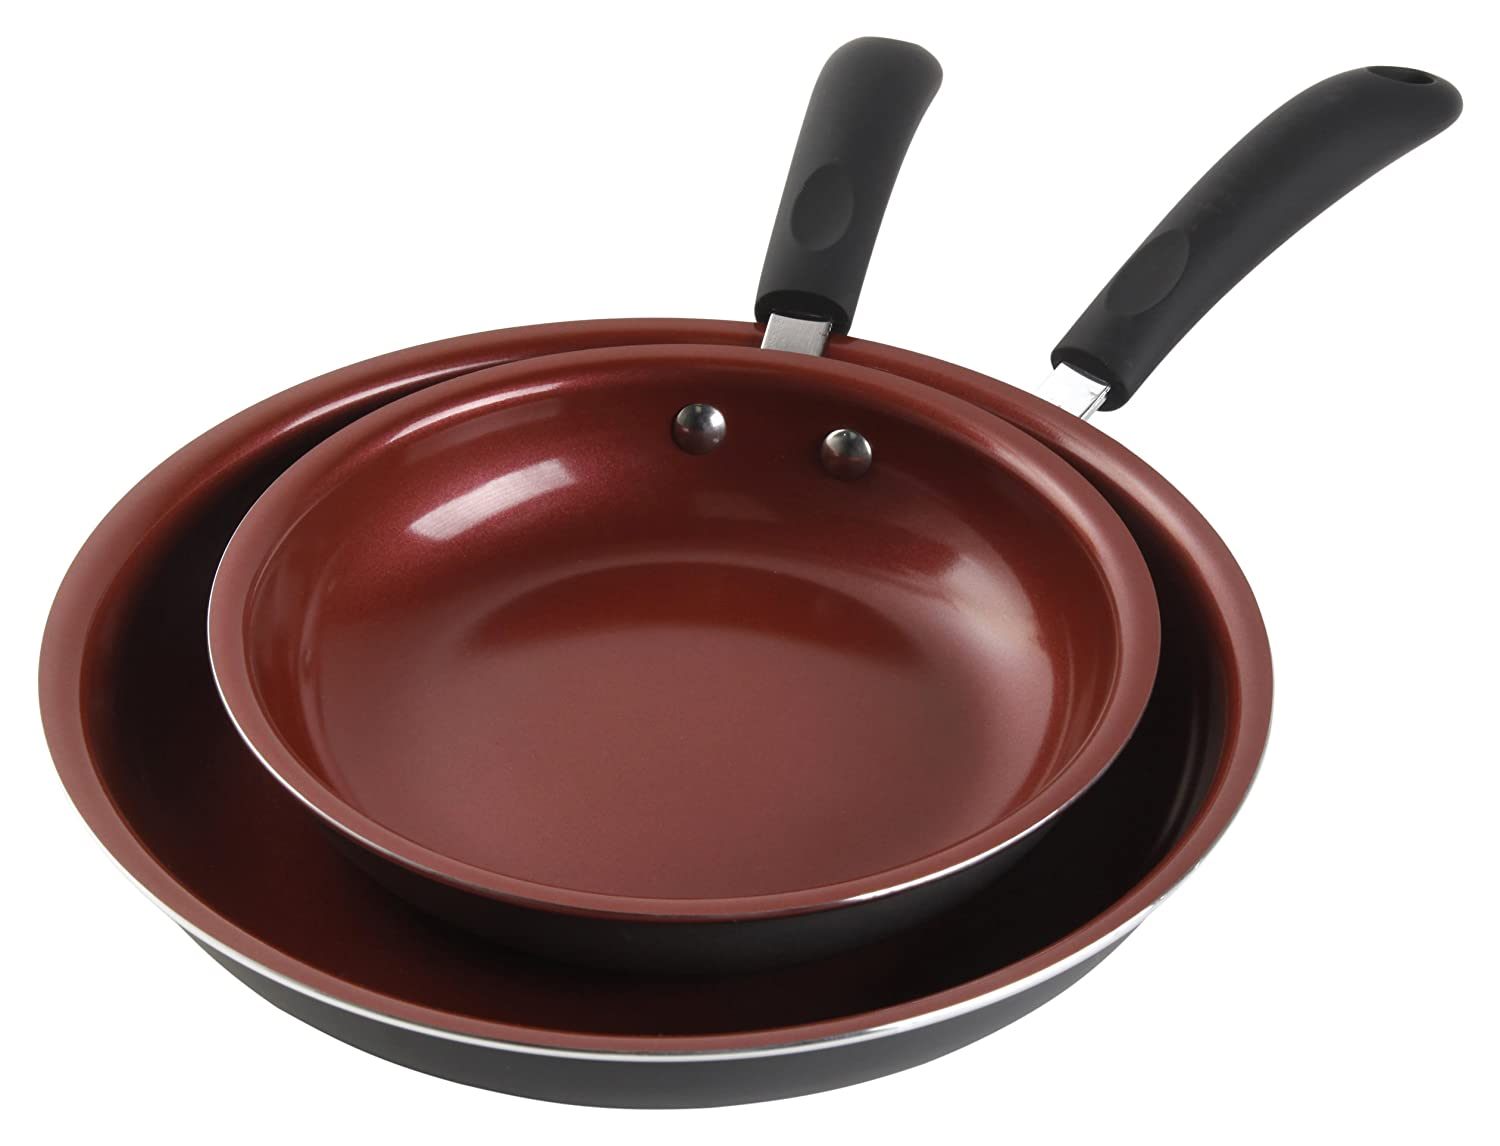 Gibson Home 91601.02 Hummington Eco-Friendly 2-Piece Ceramic Non-Stick Fry Pan Set, Multi-Size, Green